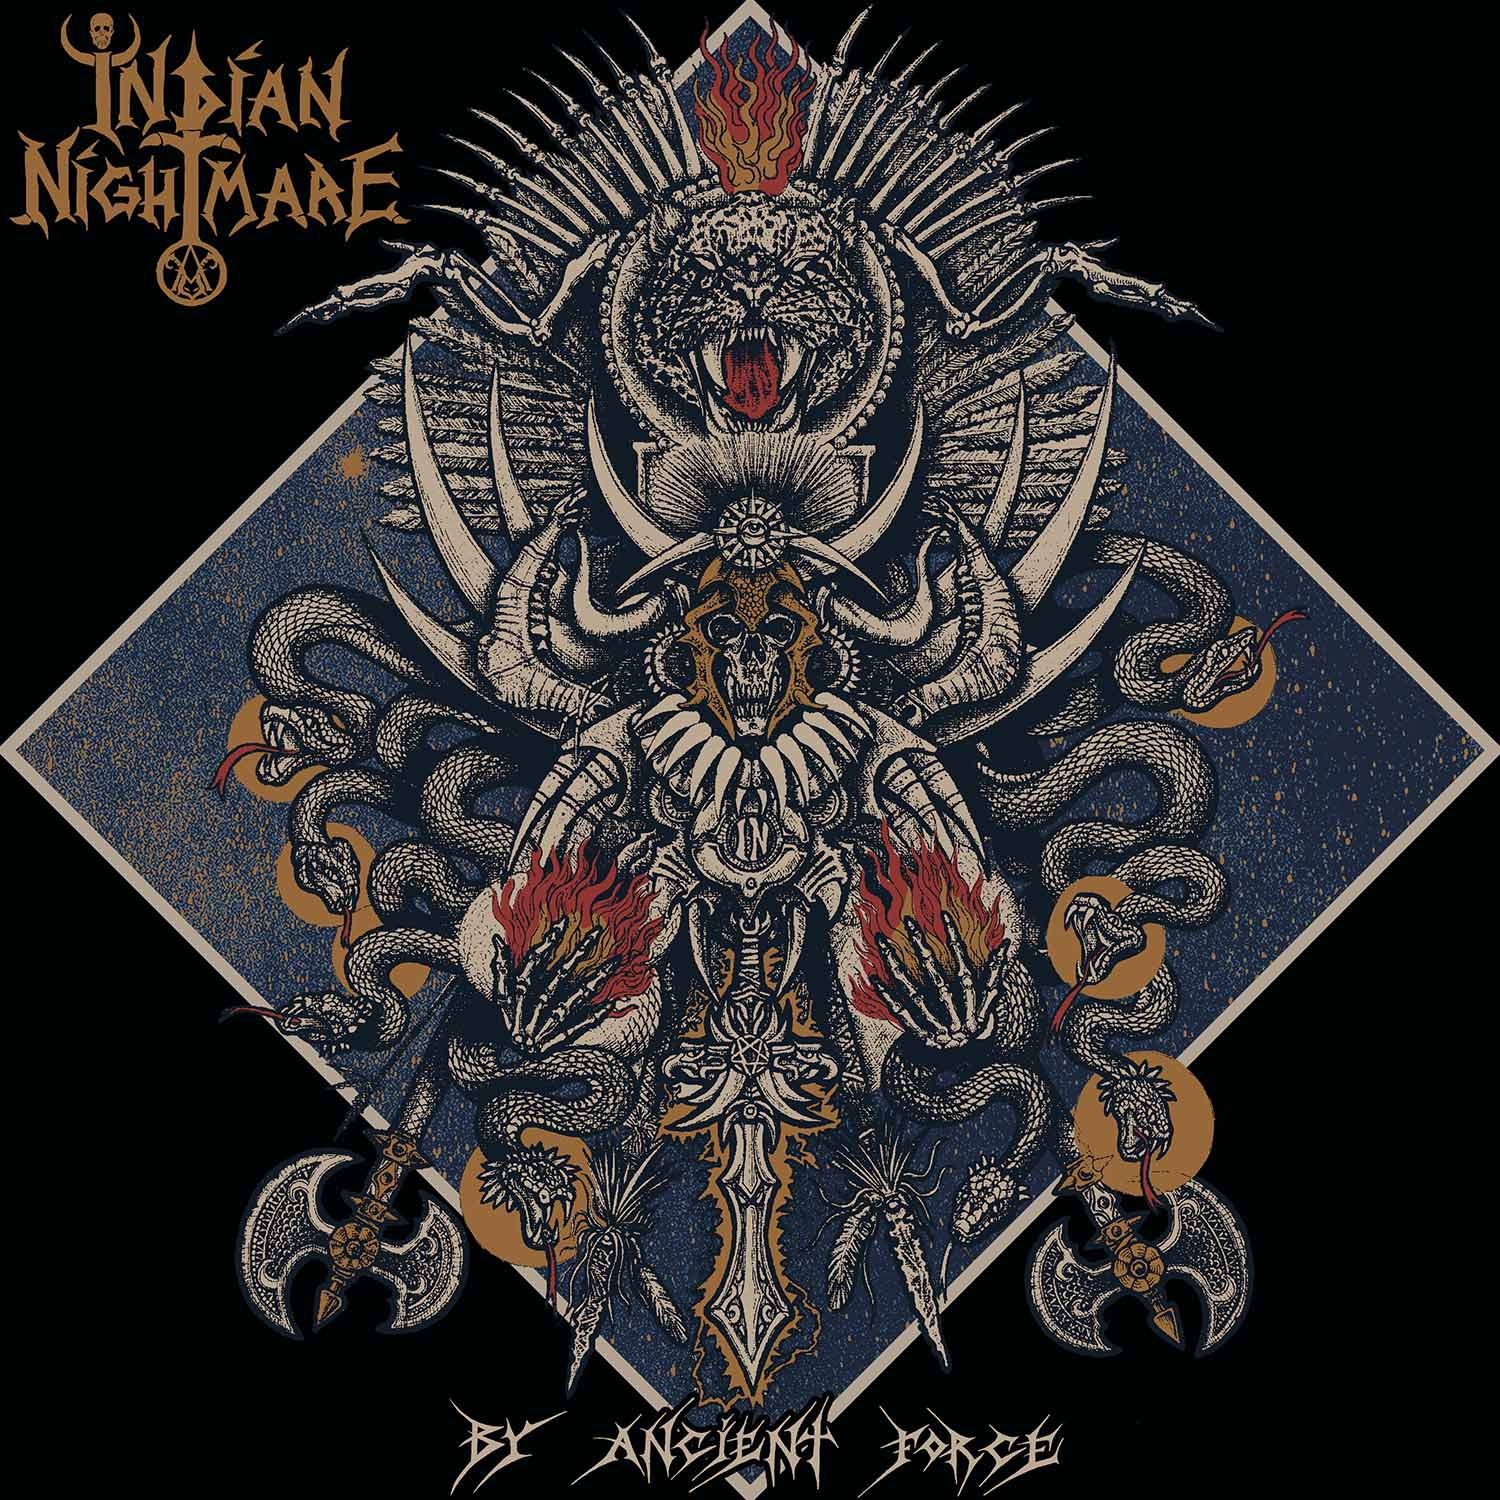 Album Review: Indian Nightmare - By Ancient Force (High ...